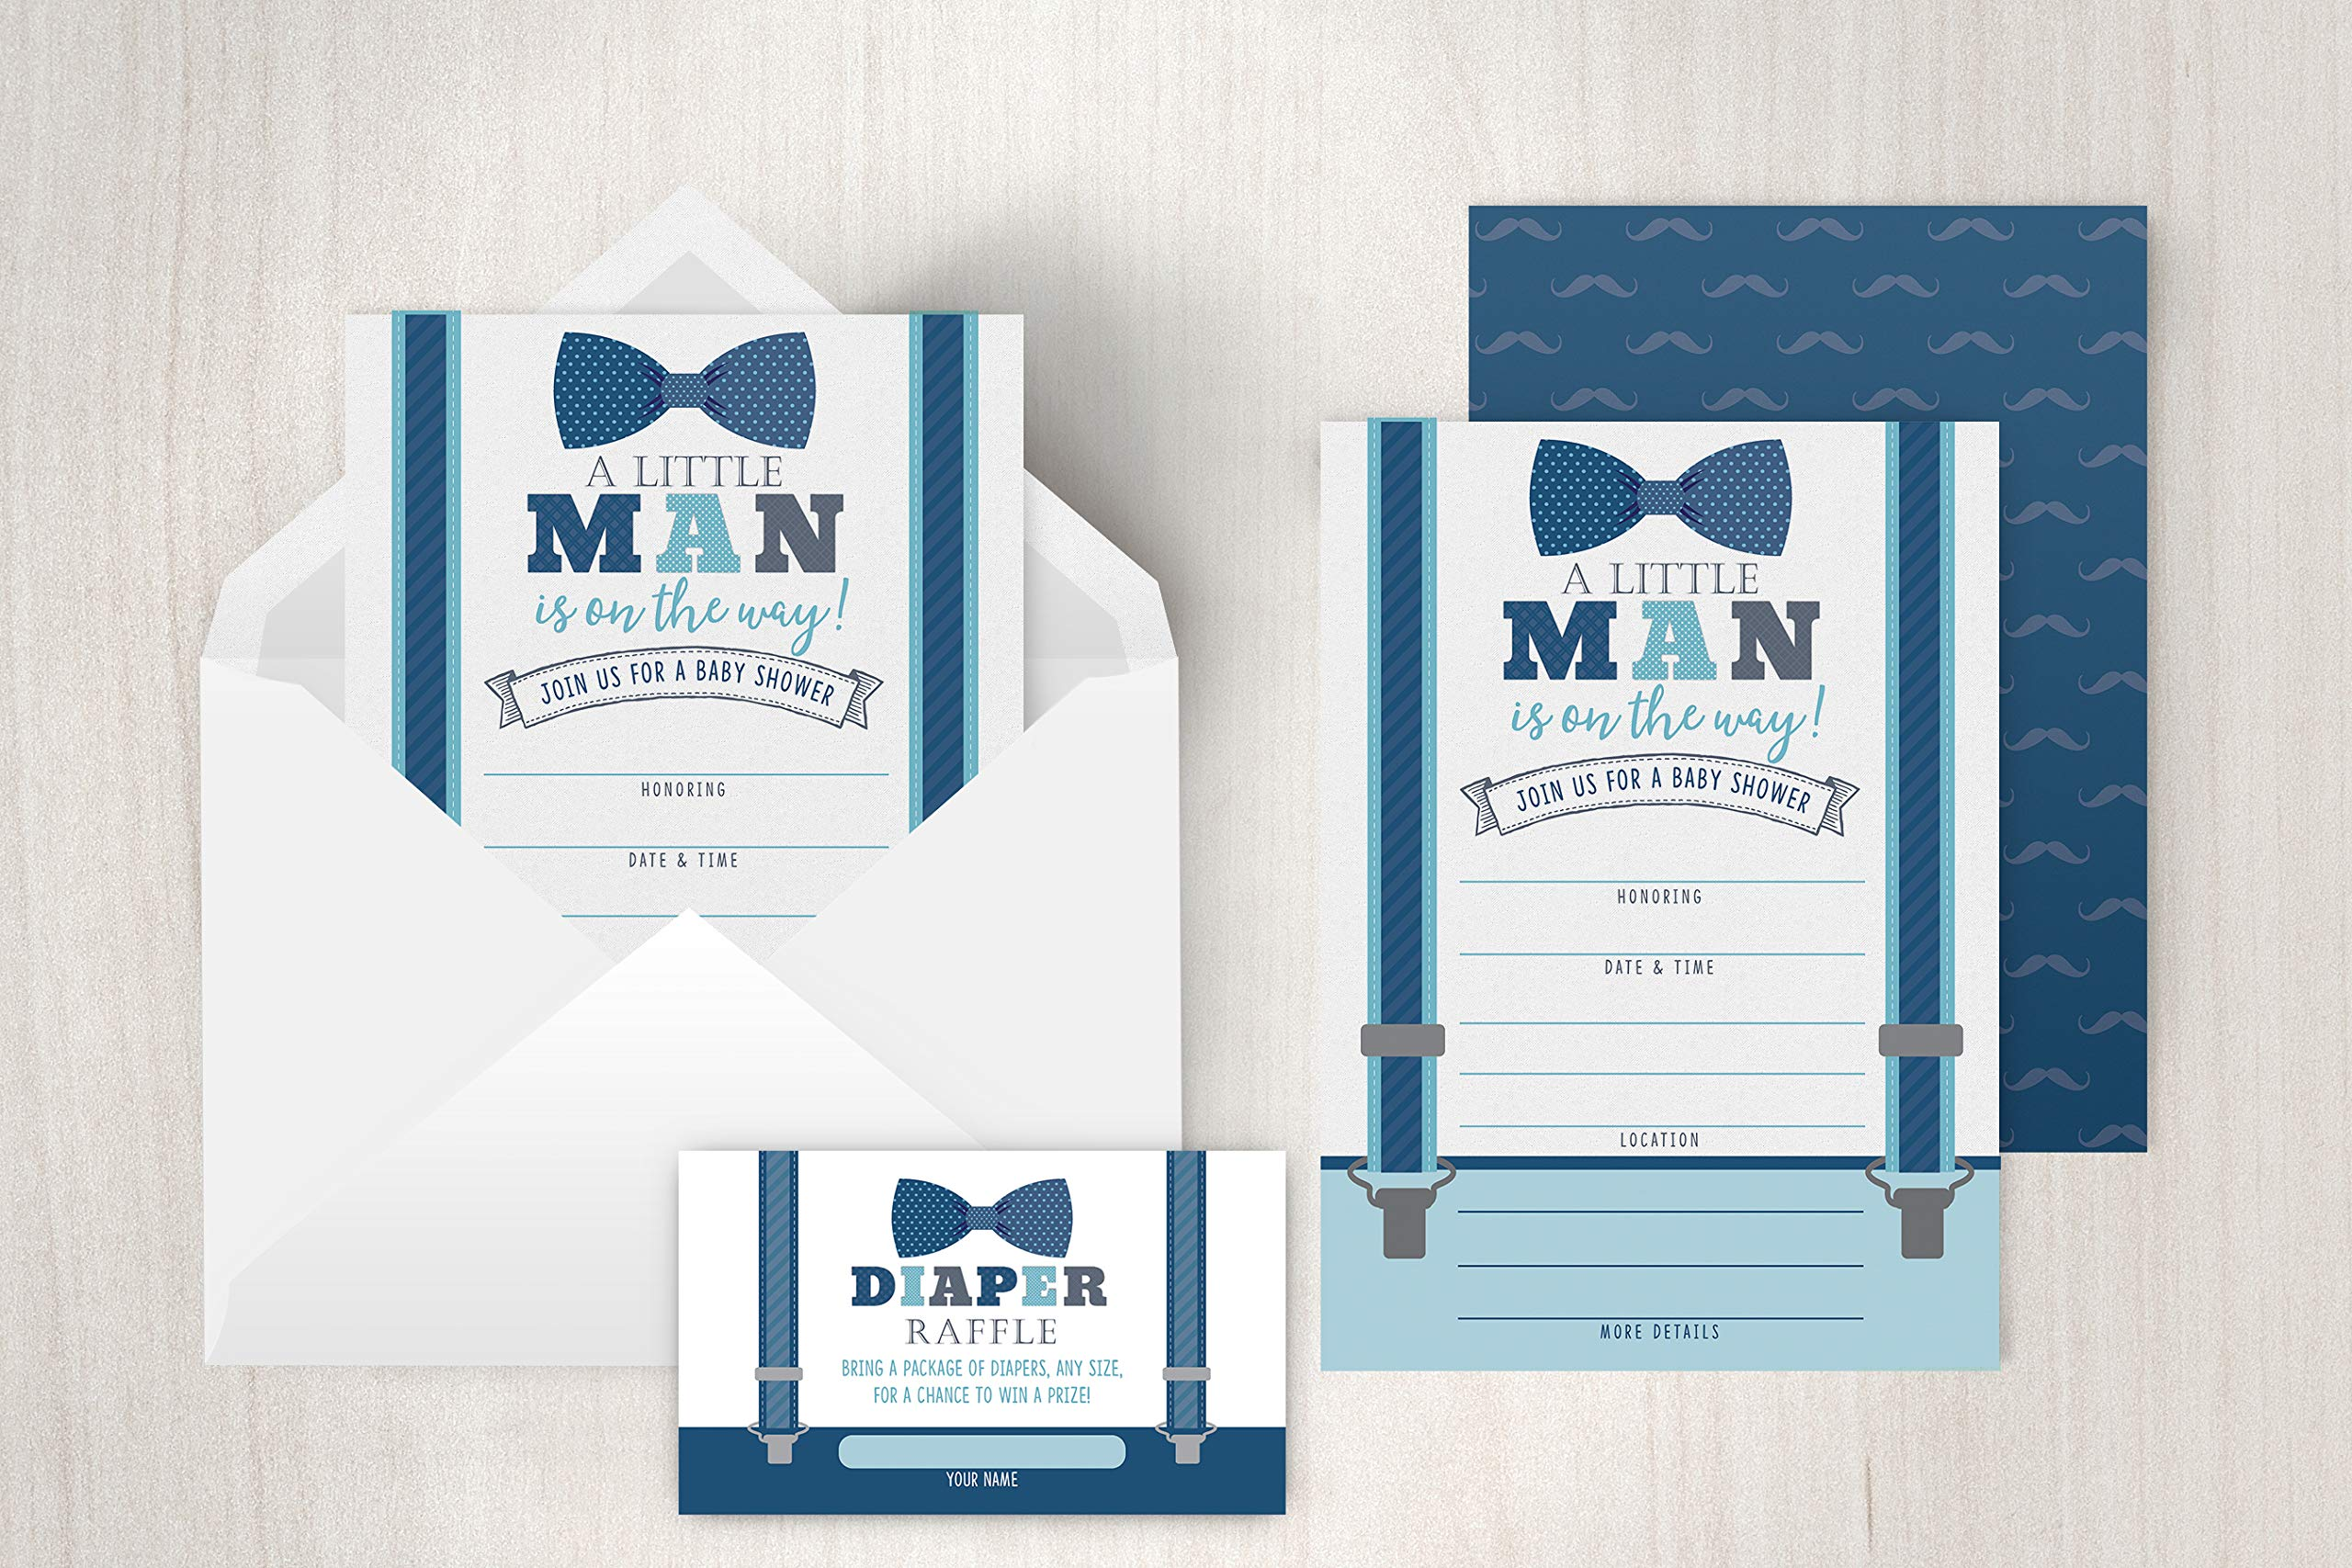 Little Man Baby Shower Invitations, Boy Baby Shower Invites with Diaper Raffles Cards, Bow Tie and Mustaches, Sprinkle, 20 Invites Including Envelopes by Your Main Event (Image #2)